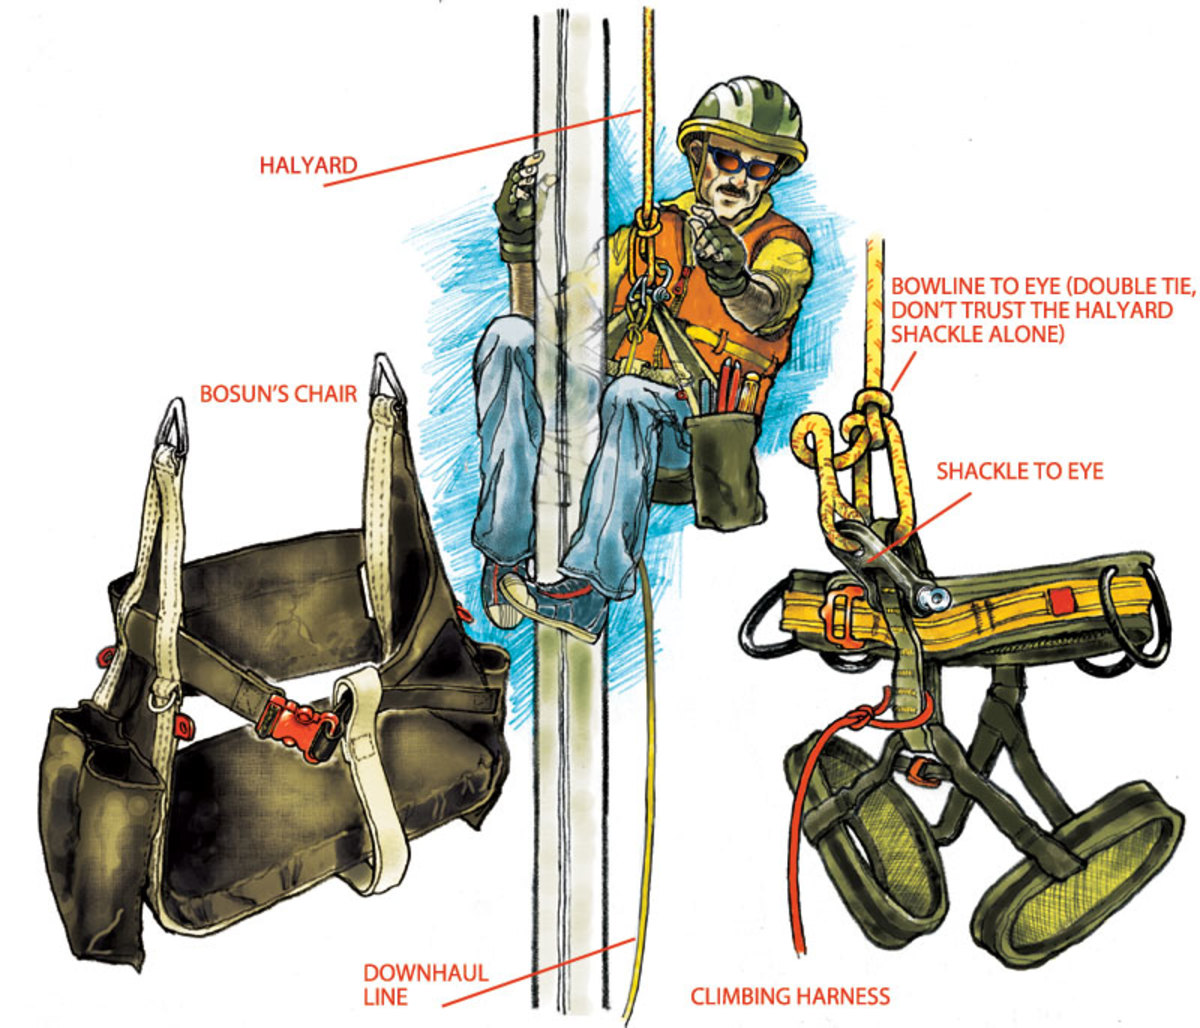 going aloft When working aloft underway, wear a helmet, proper clothes and always secure the chair to the halyard with a bowline. Use the halyard shackle as the backup connection and also rig a downhaul line